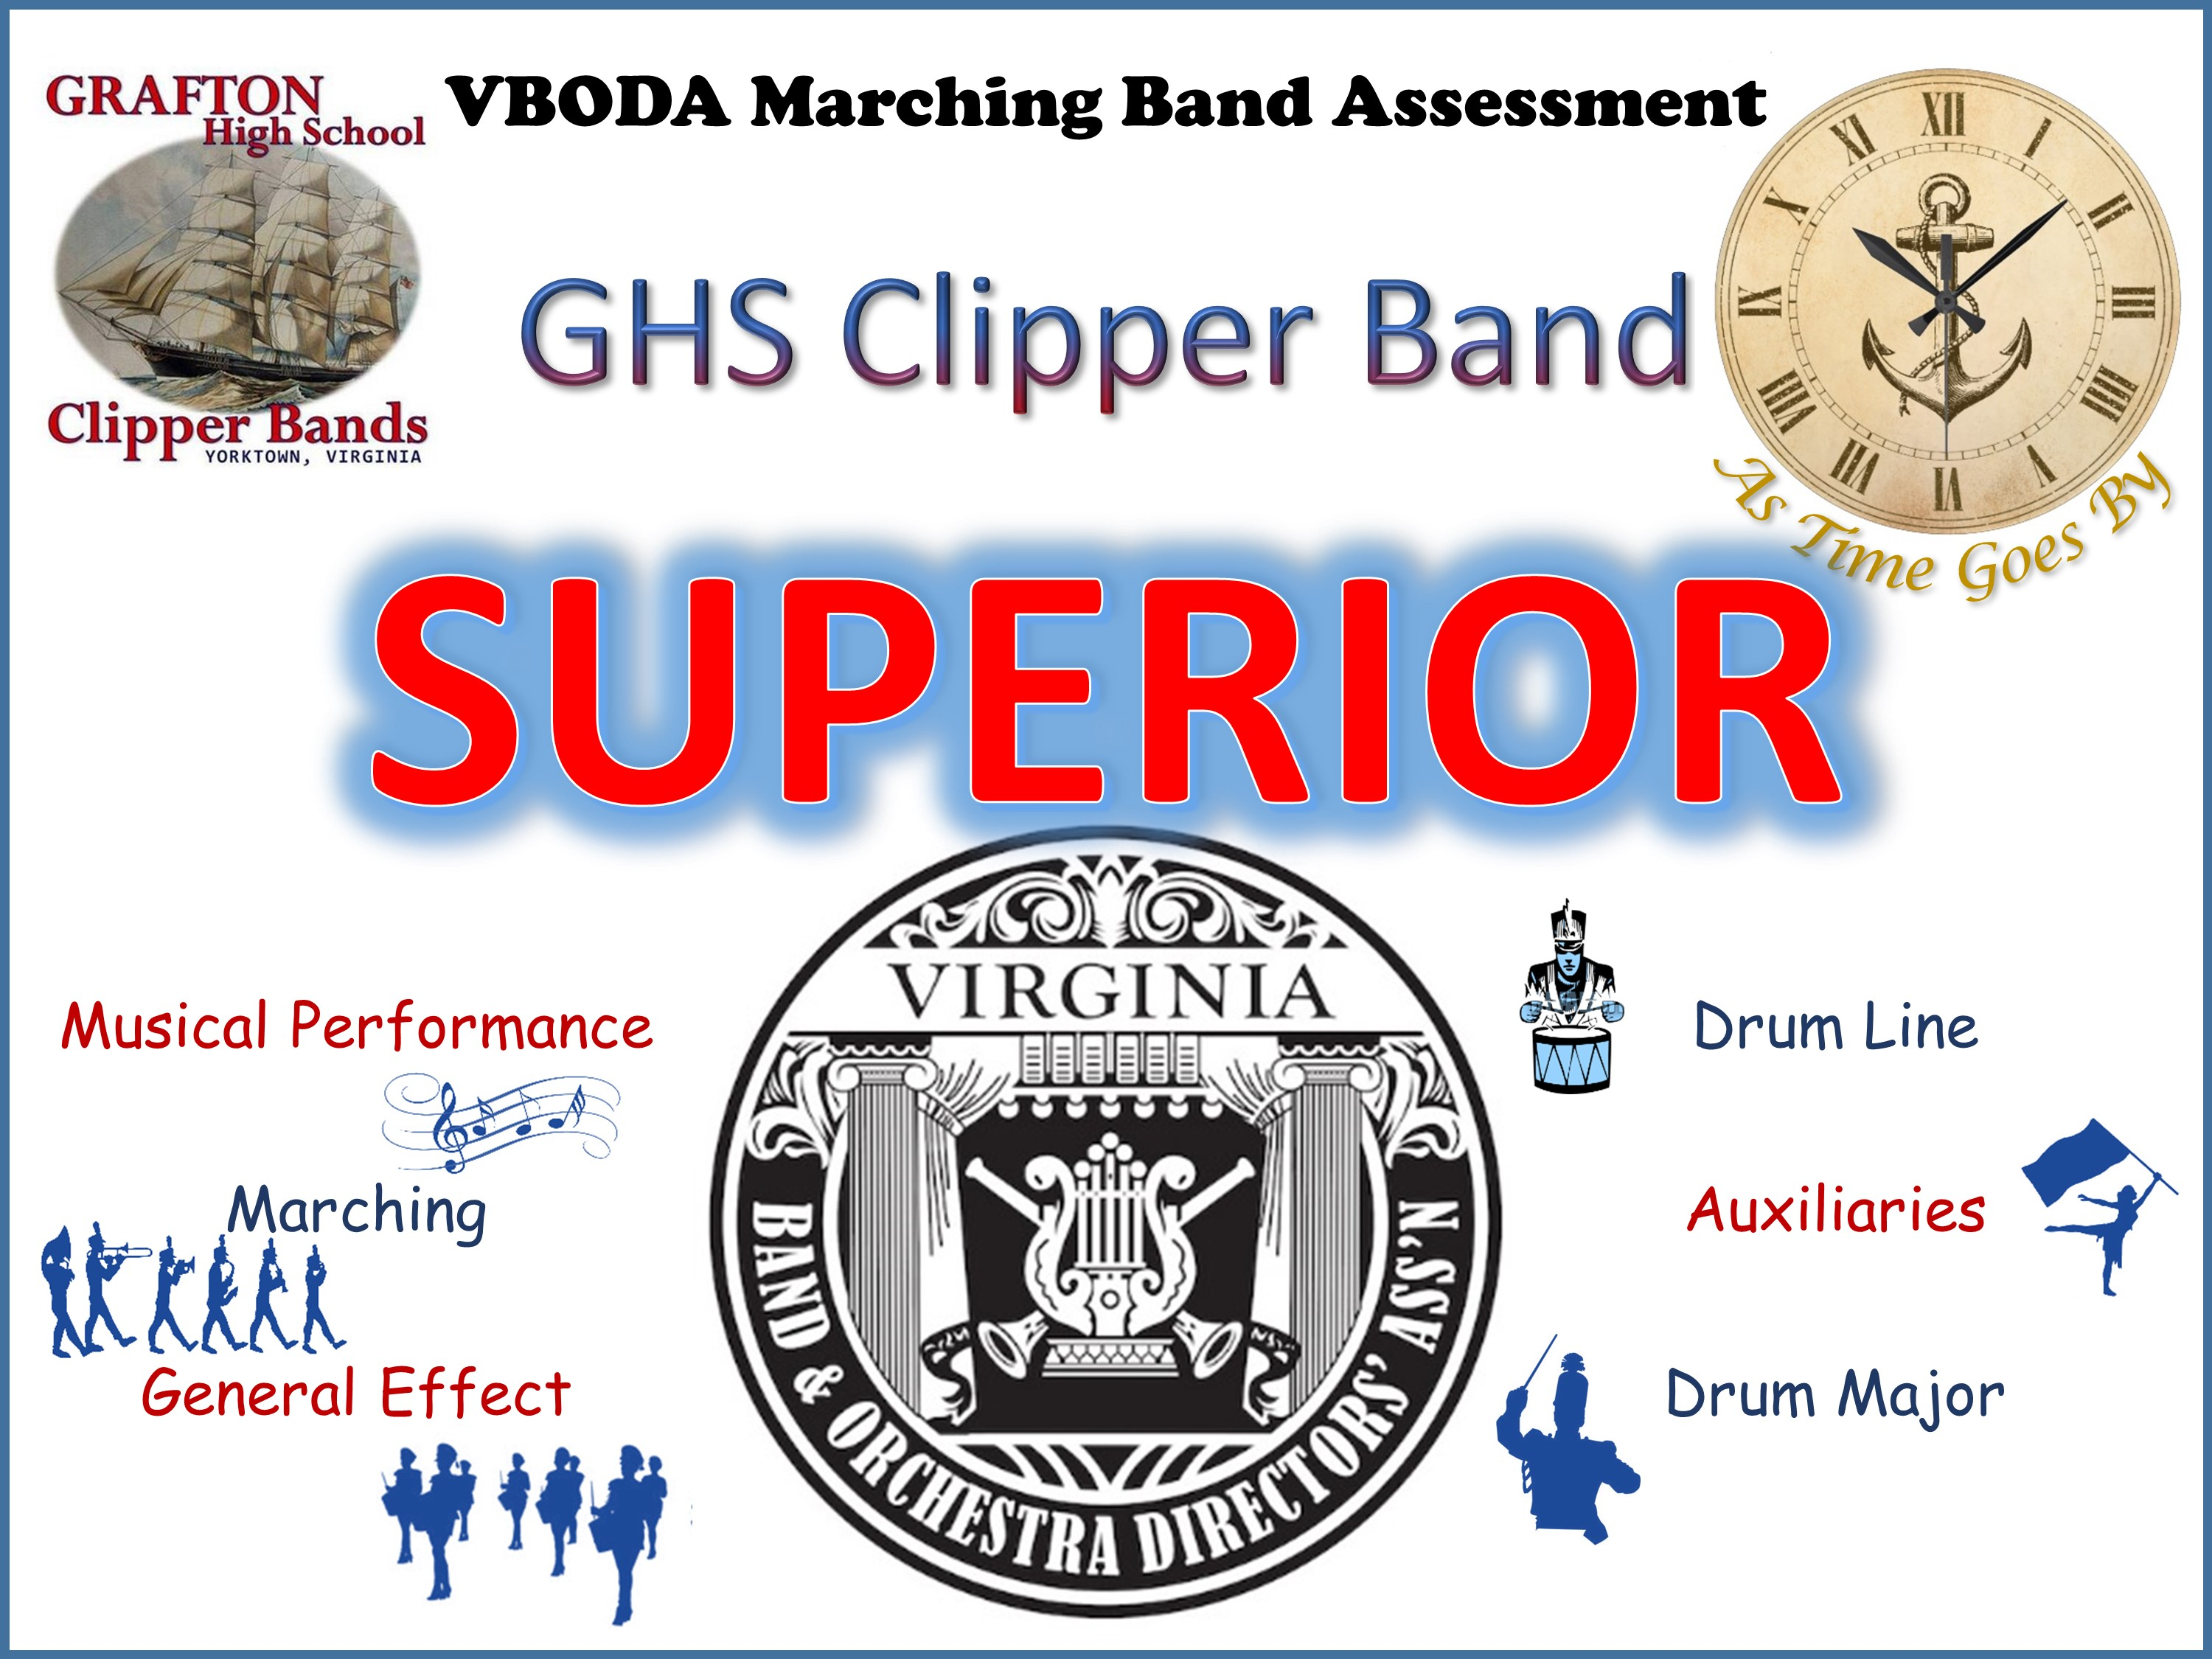 VBODA Marching Band Assessment